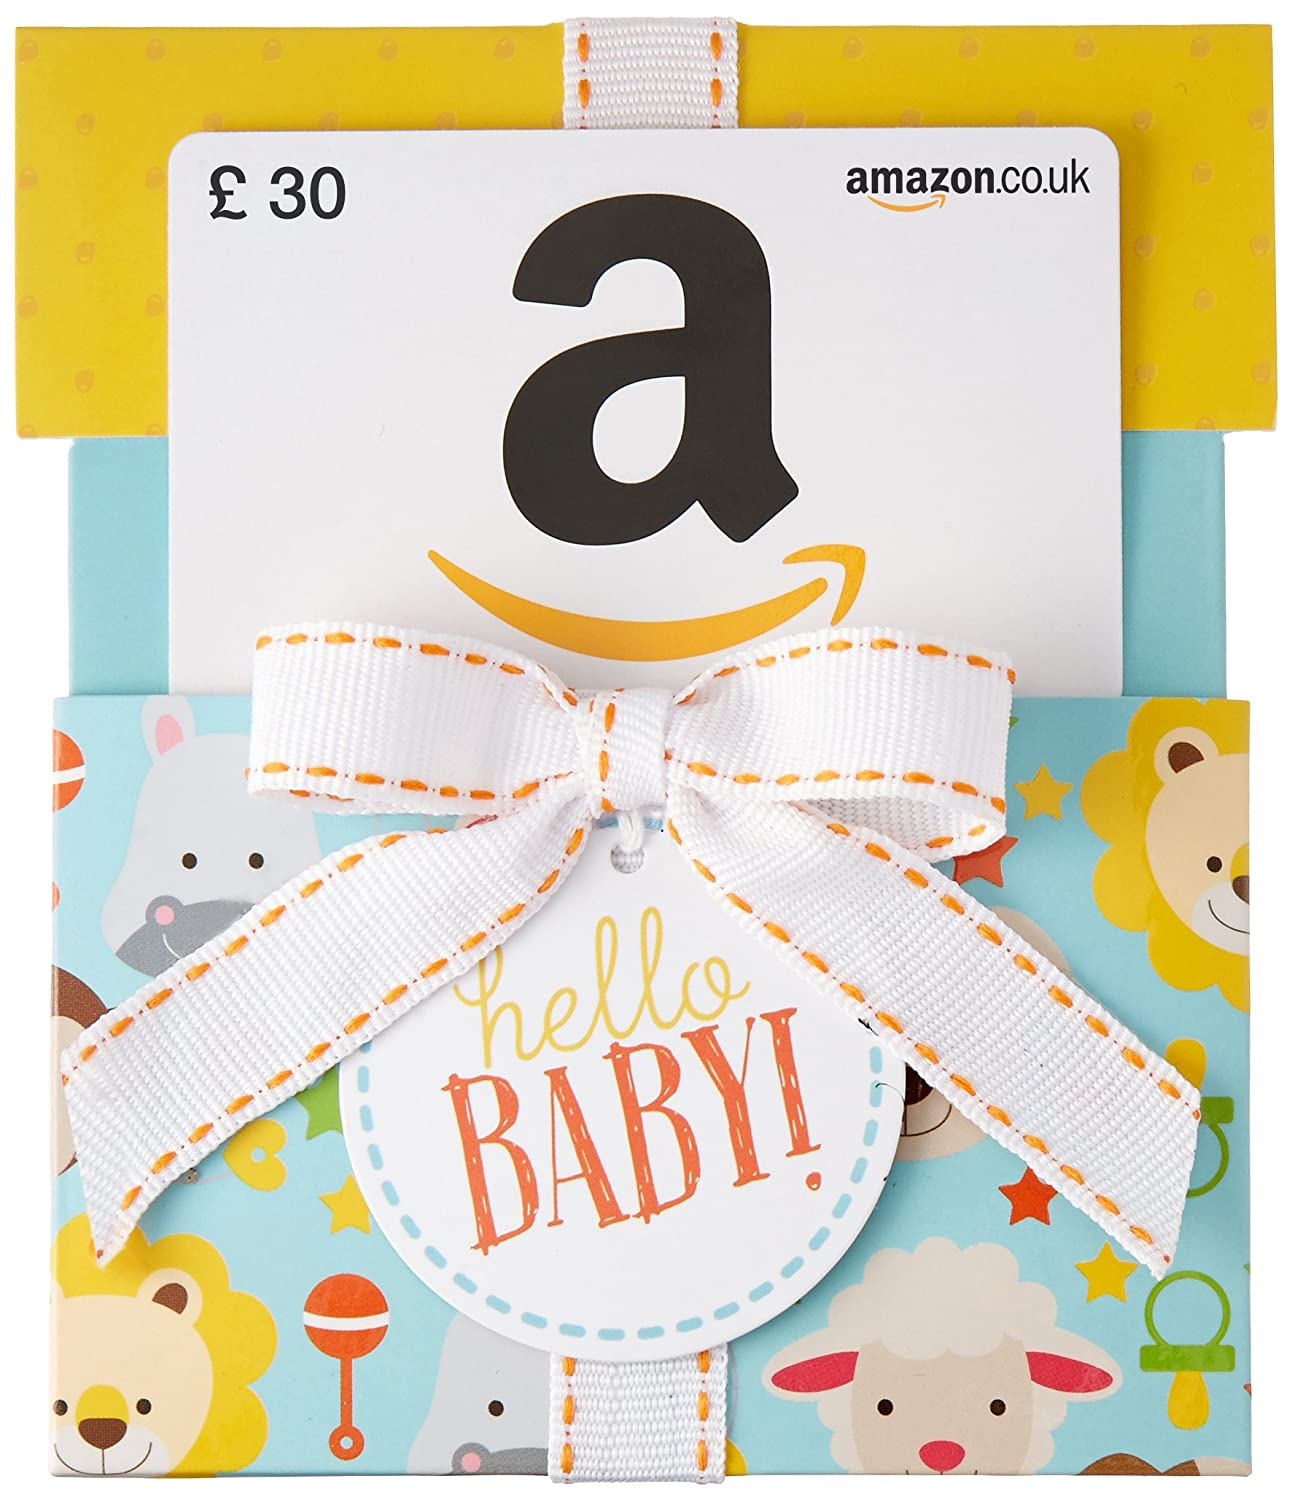 Amazon.co.uk Gift Card - Hello Baby Reveal - FREE One-Day Delivery Amazon EU S.à.r.l.